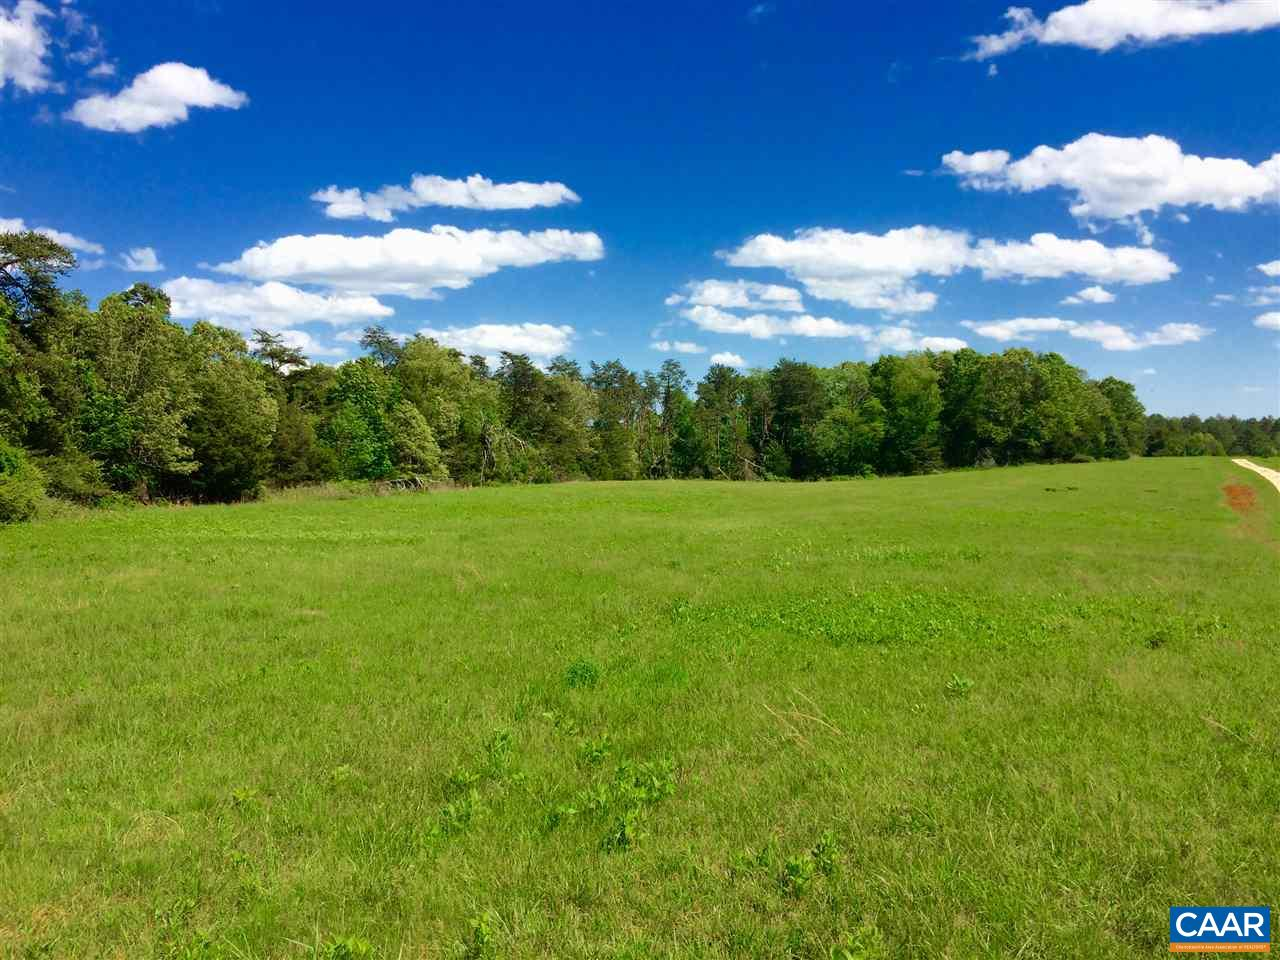 land for sale , MLS #562493, 16 - 2A Owensville Rd